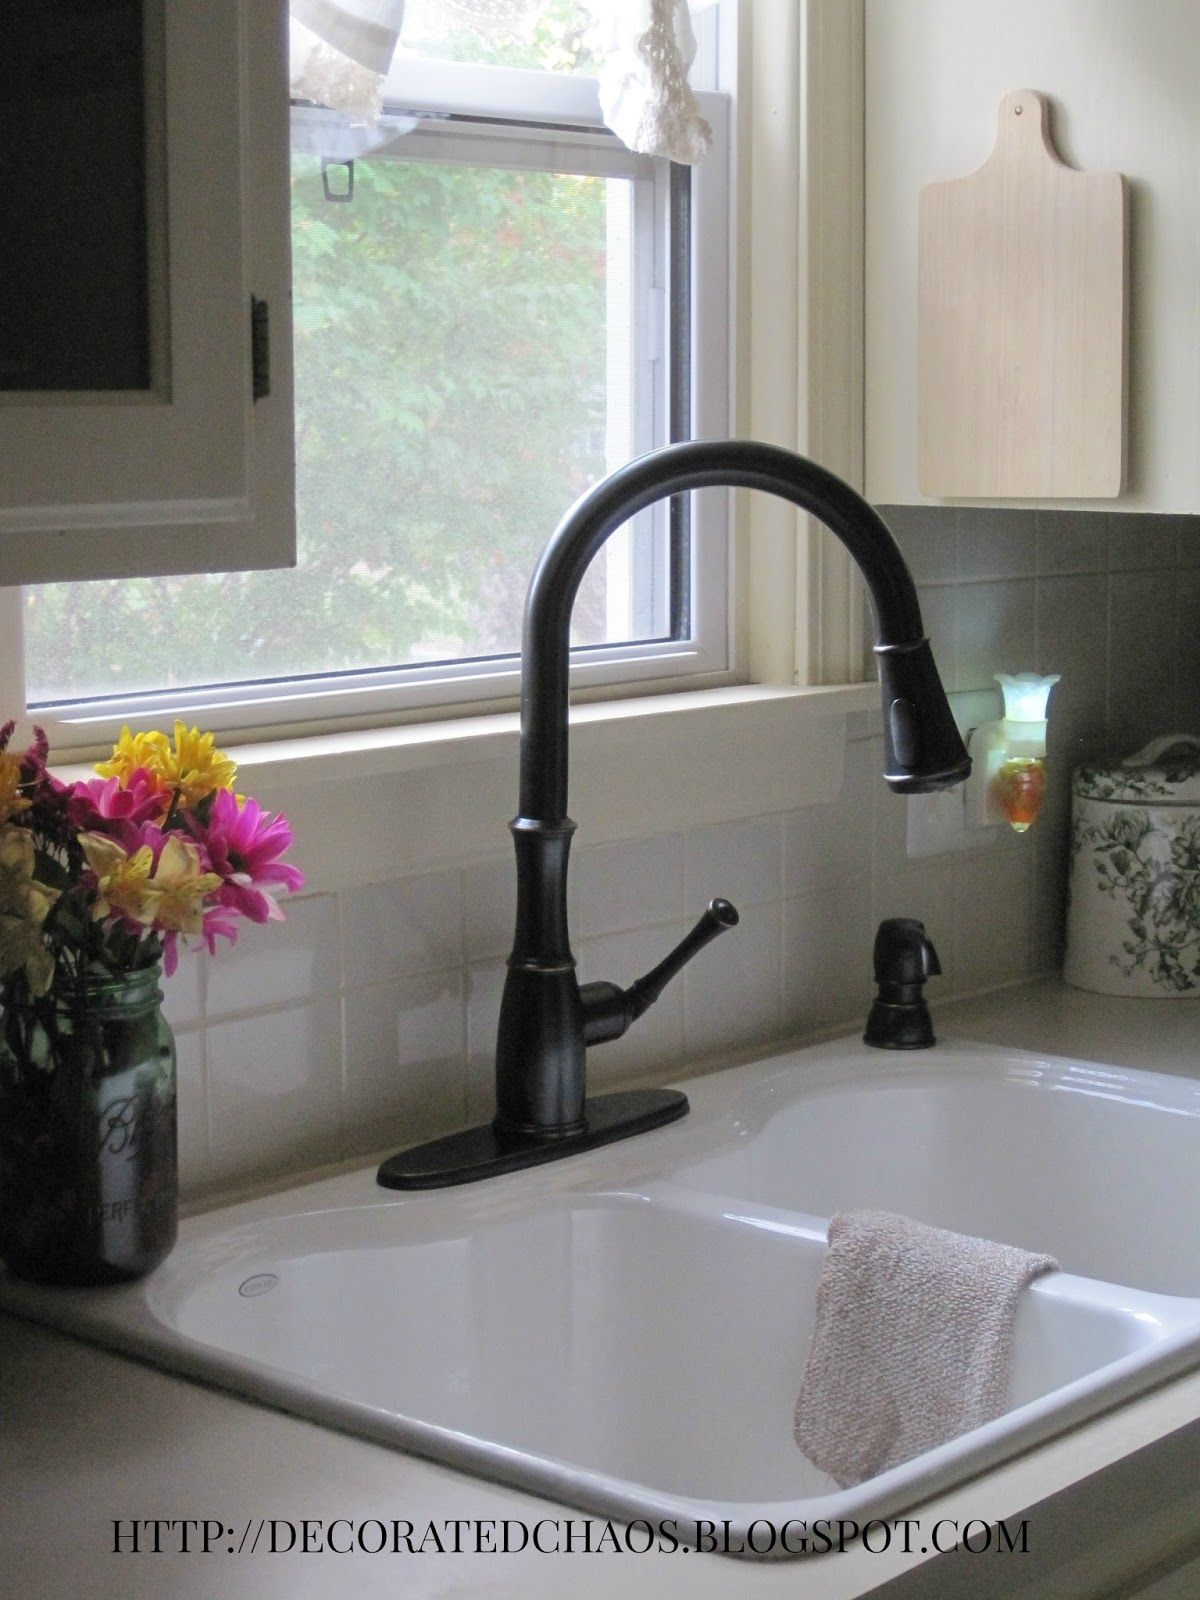 new kitchen faucet black decorated chaosnew pfister faucet in tuscan bronze and white cast iron sink